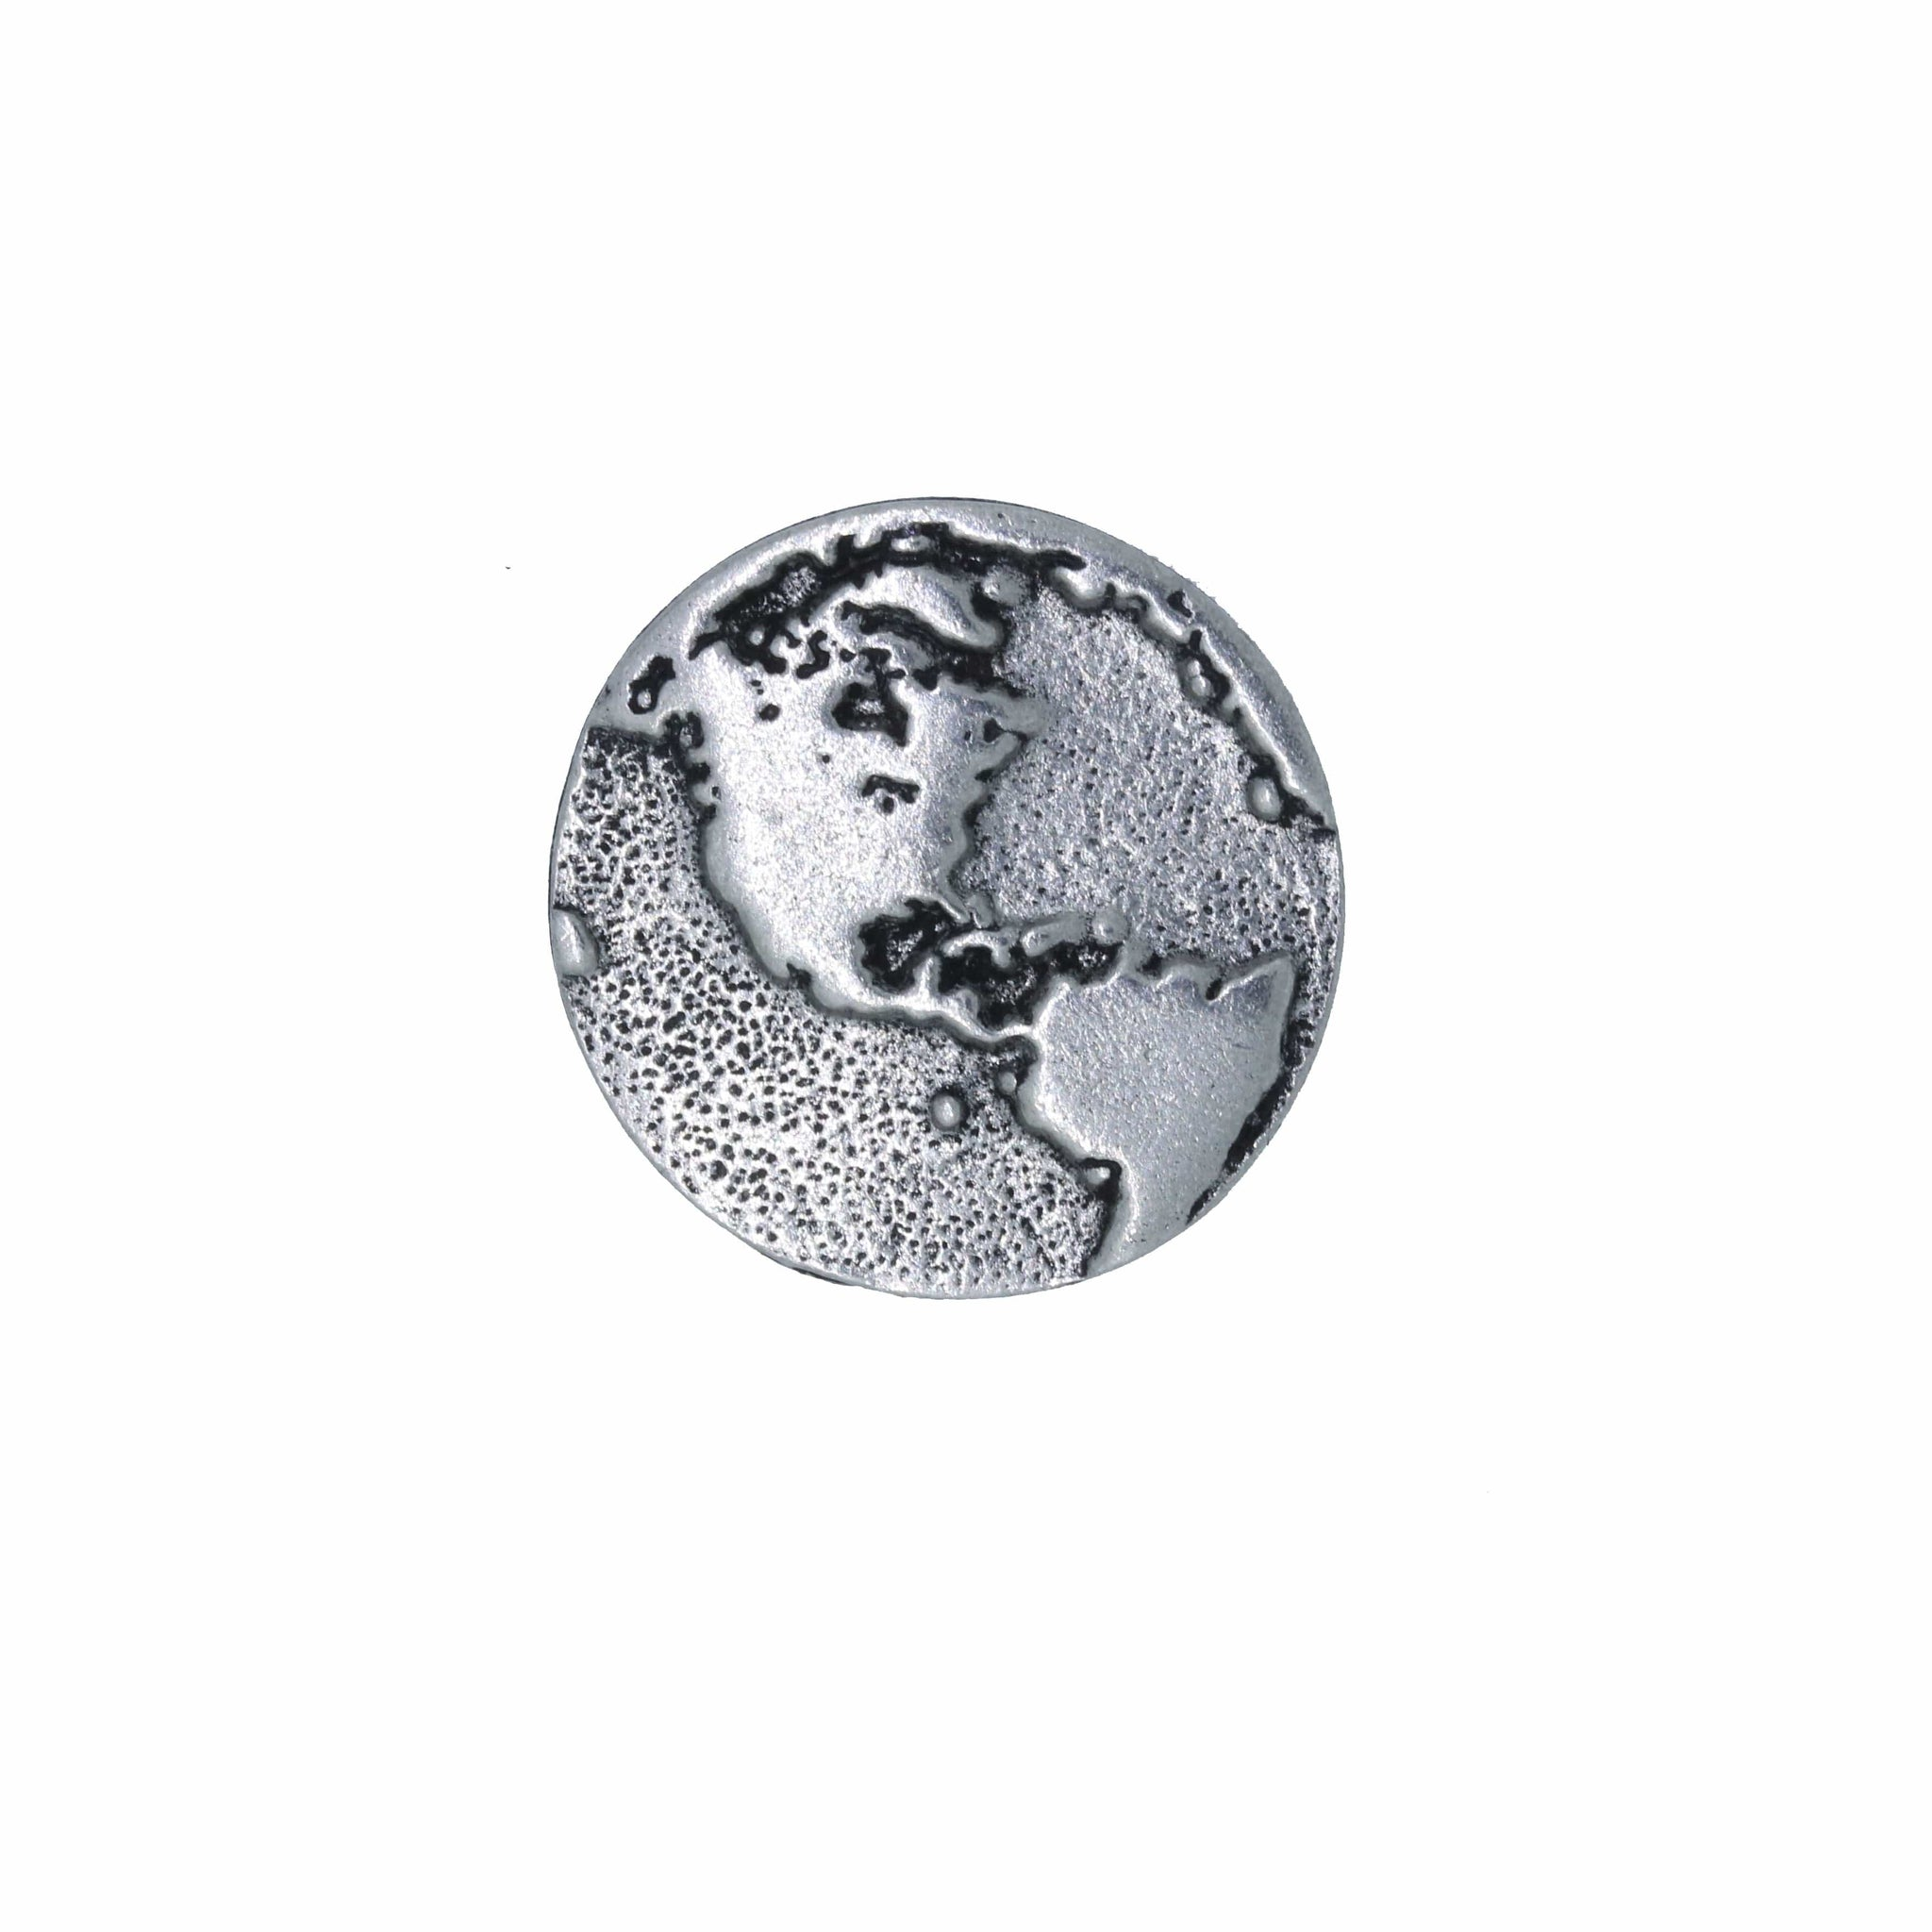 The Americas Lapel Pin